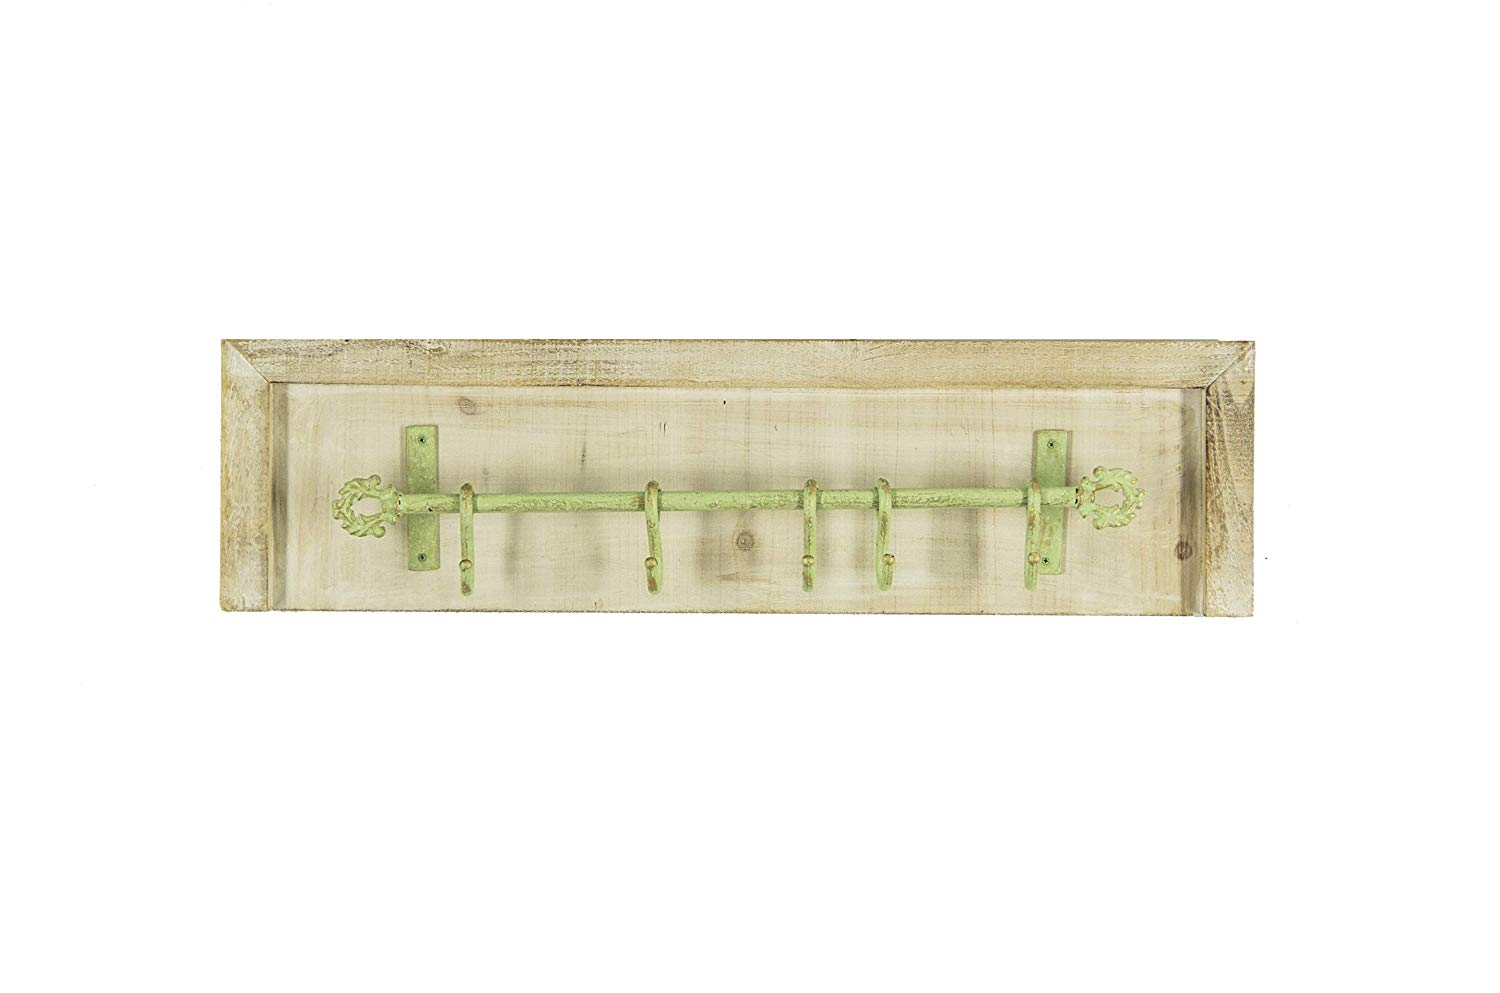 Avignon Home AVIGNON Rustic Coat Hook Vintage Wooden Coat Rack With Rustic Metal Hooks 32 inches wide and 7 inches high